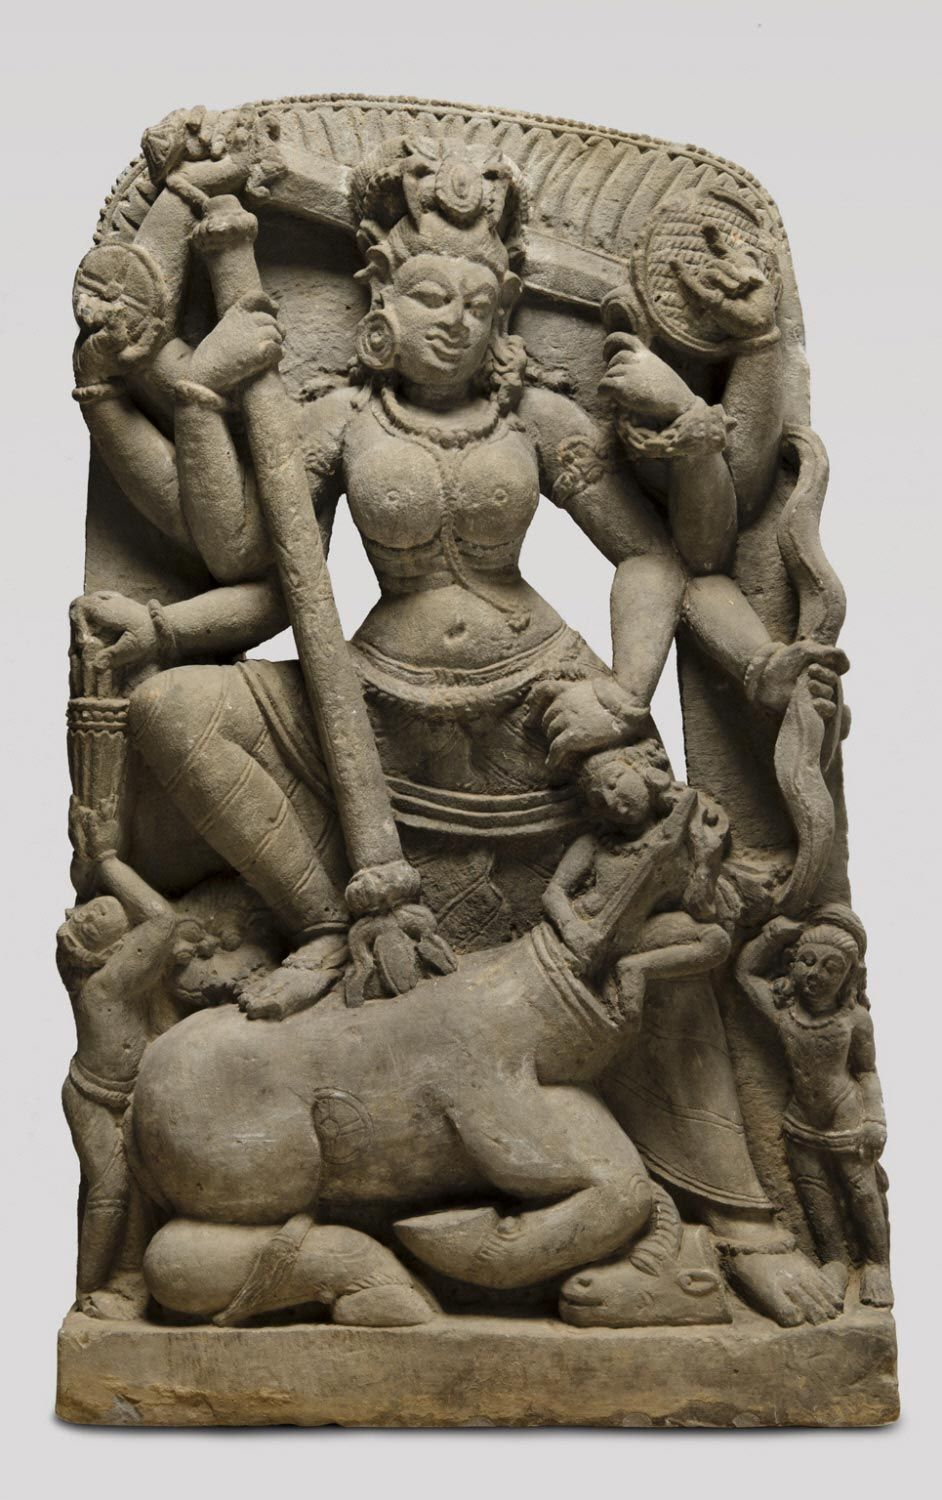 Mahishasuramardini (Durga Destroying the Buffalo Demon) Artist_maker unknown, Indian Geography_ Made in Uttar Pradesh, India, Asia Date_ Mid- 8th century Medium_ Sandstone Dimensions_ 29 1_2 × 18 1_4 × 4 3_4 inc